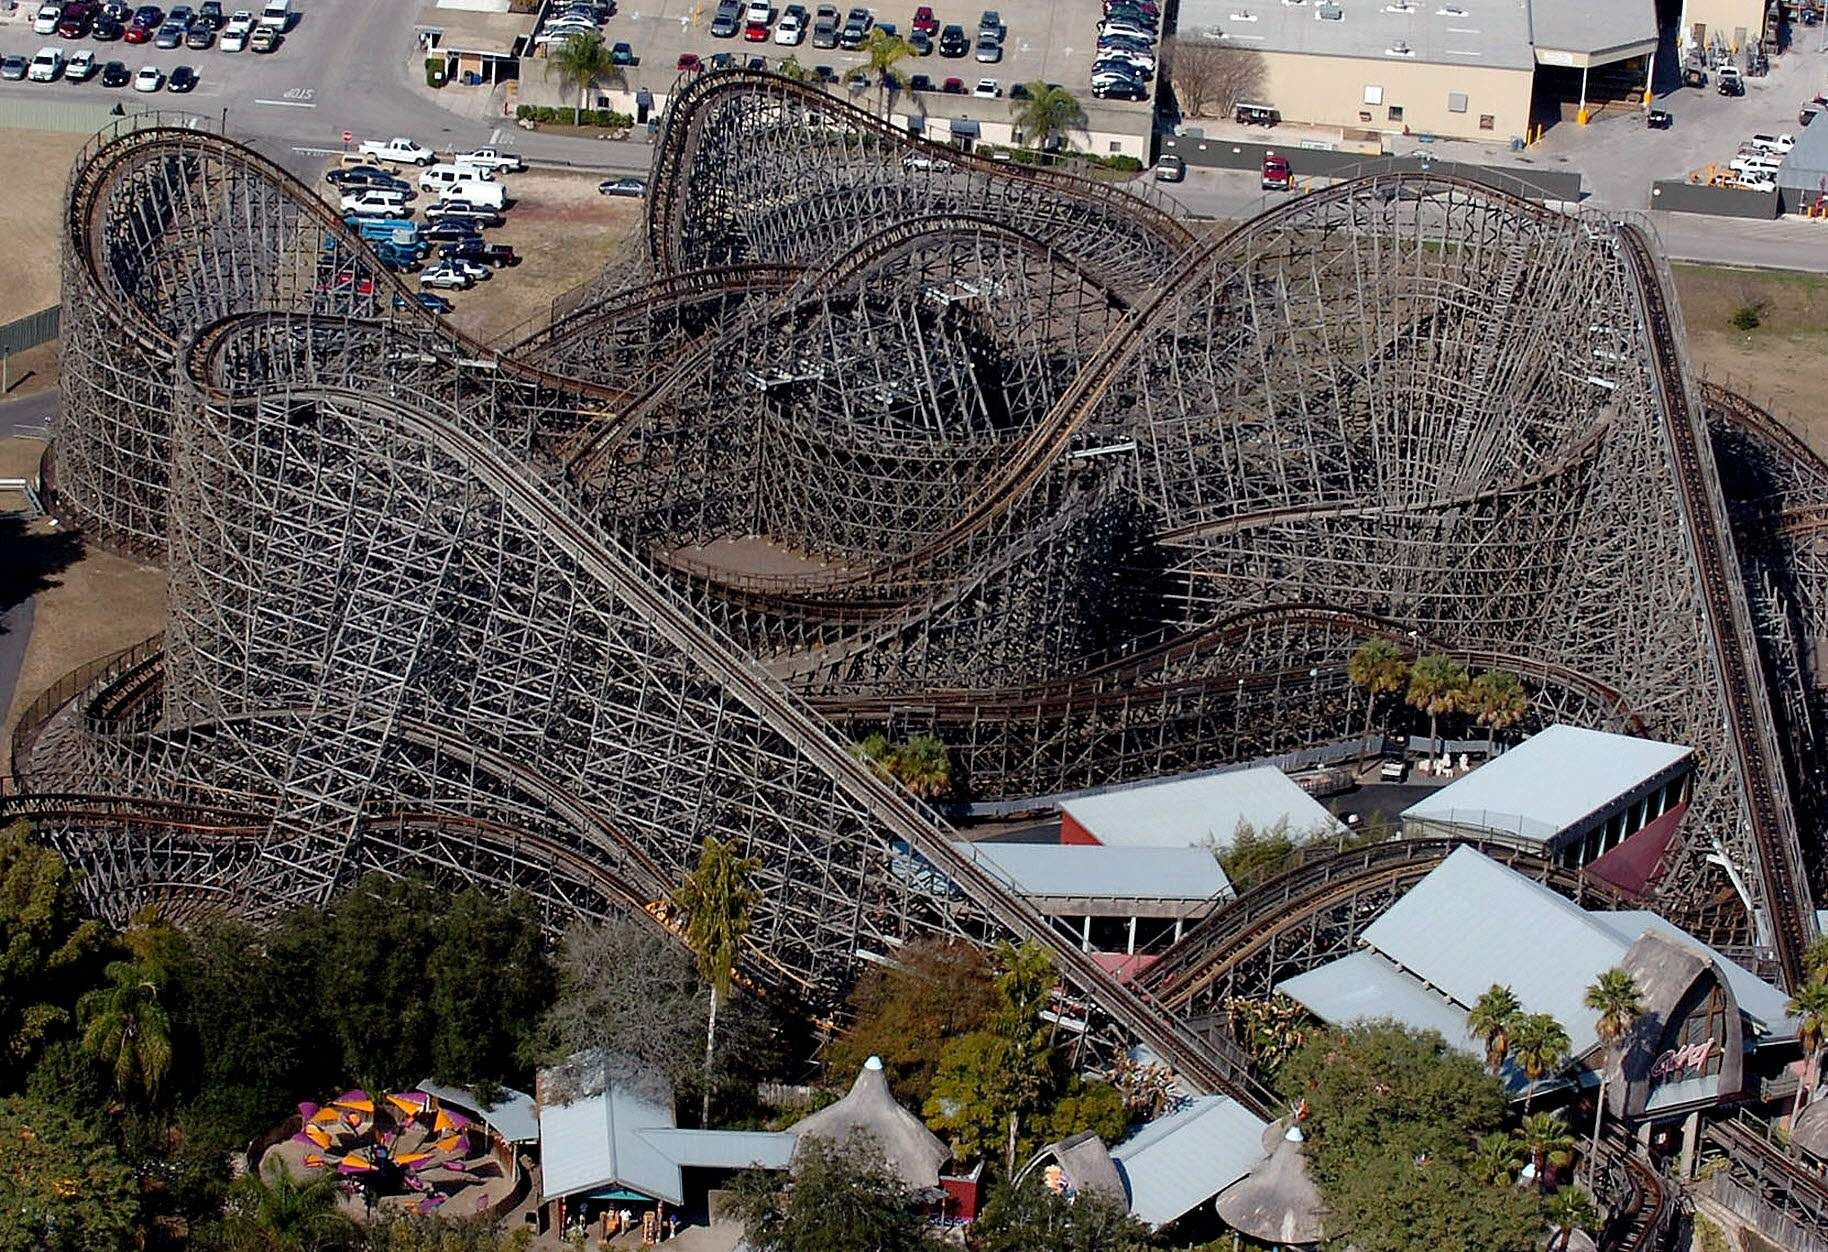 Busch Gardens Revamped Gwazi In 2011 In An Effort To Smooth The